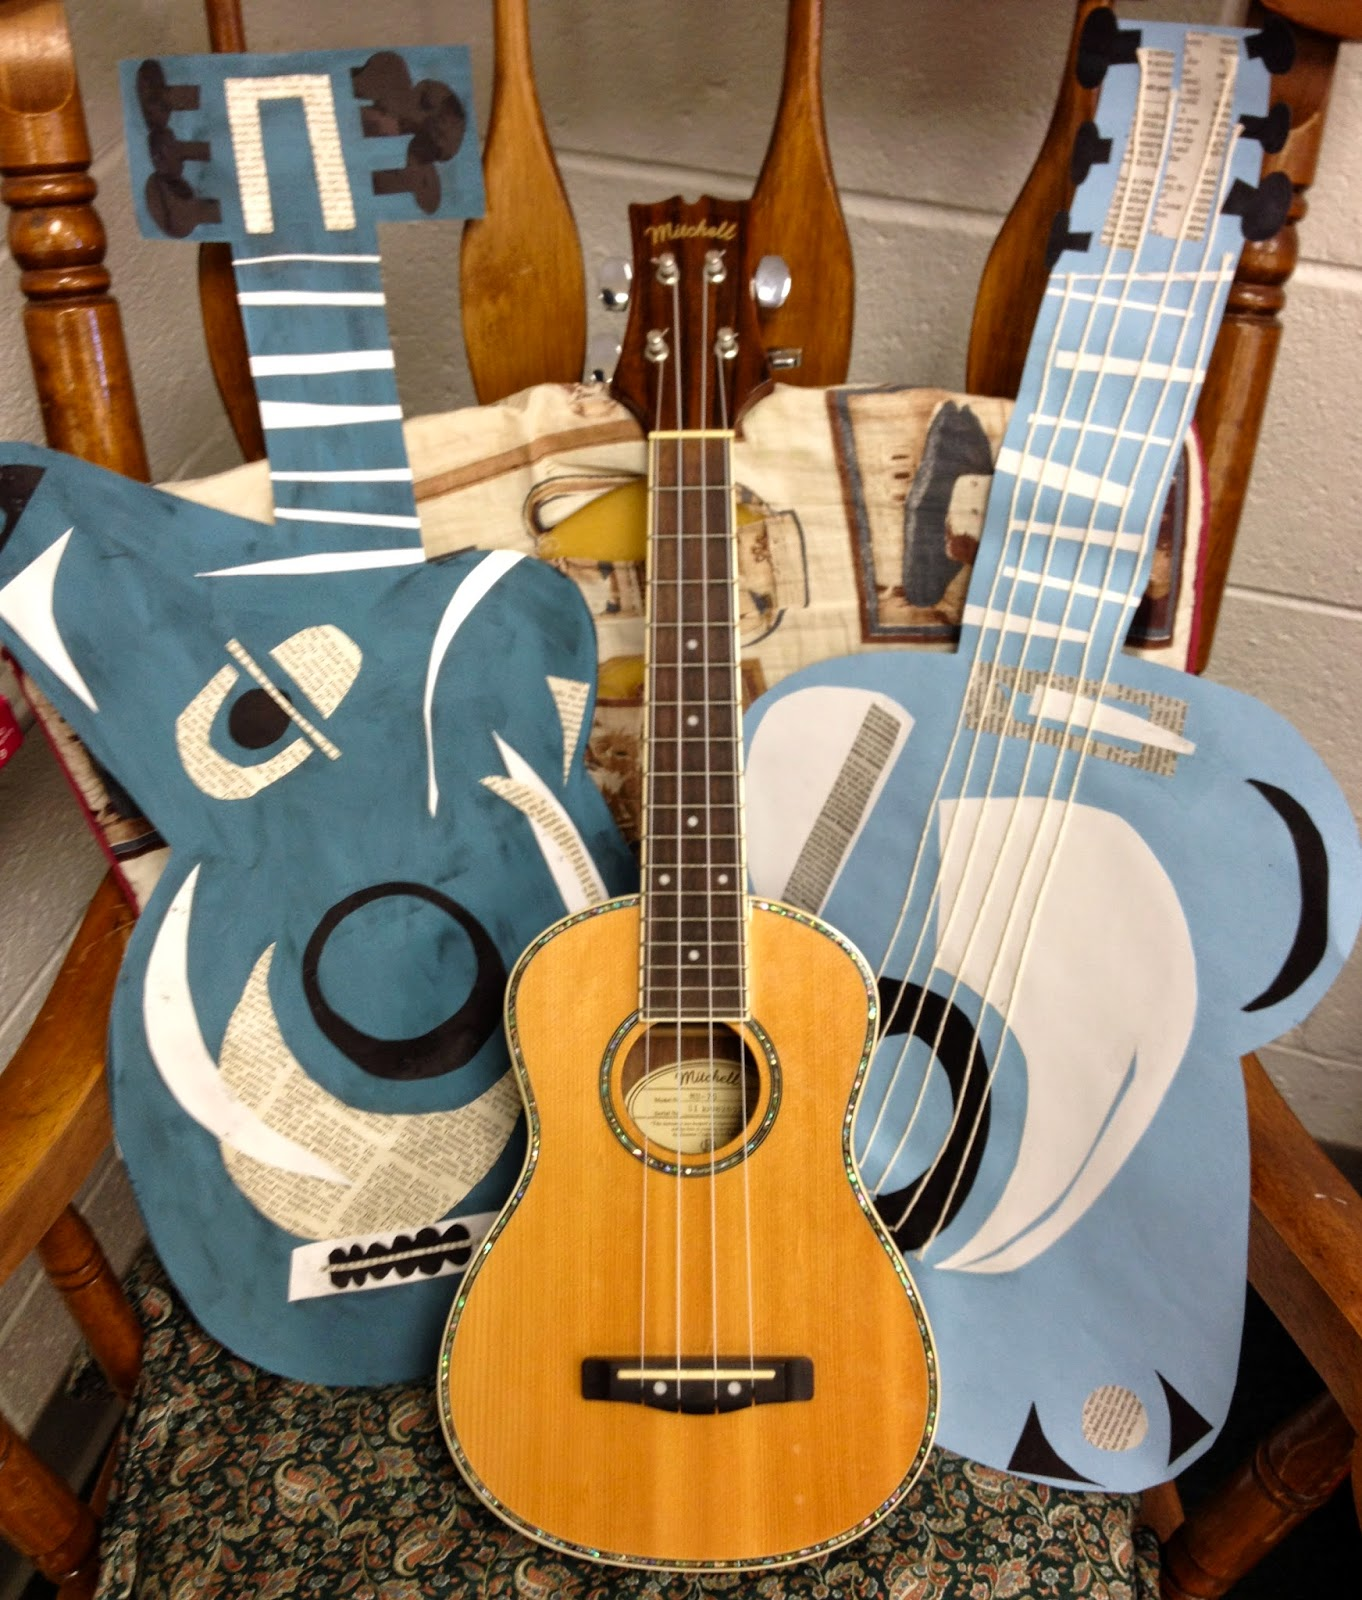 Ms Pfeifer 5th Grade Picasso Blue Period Guitars